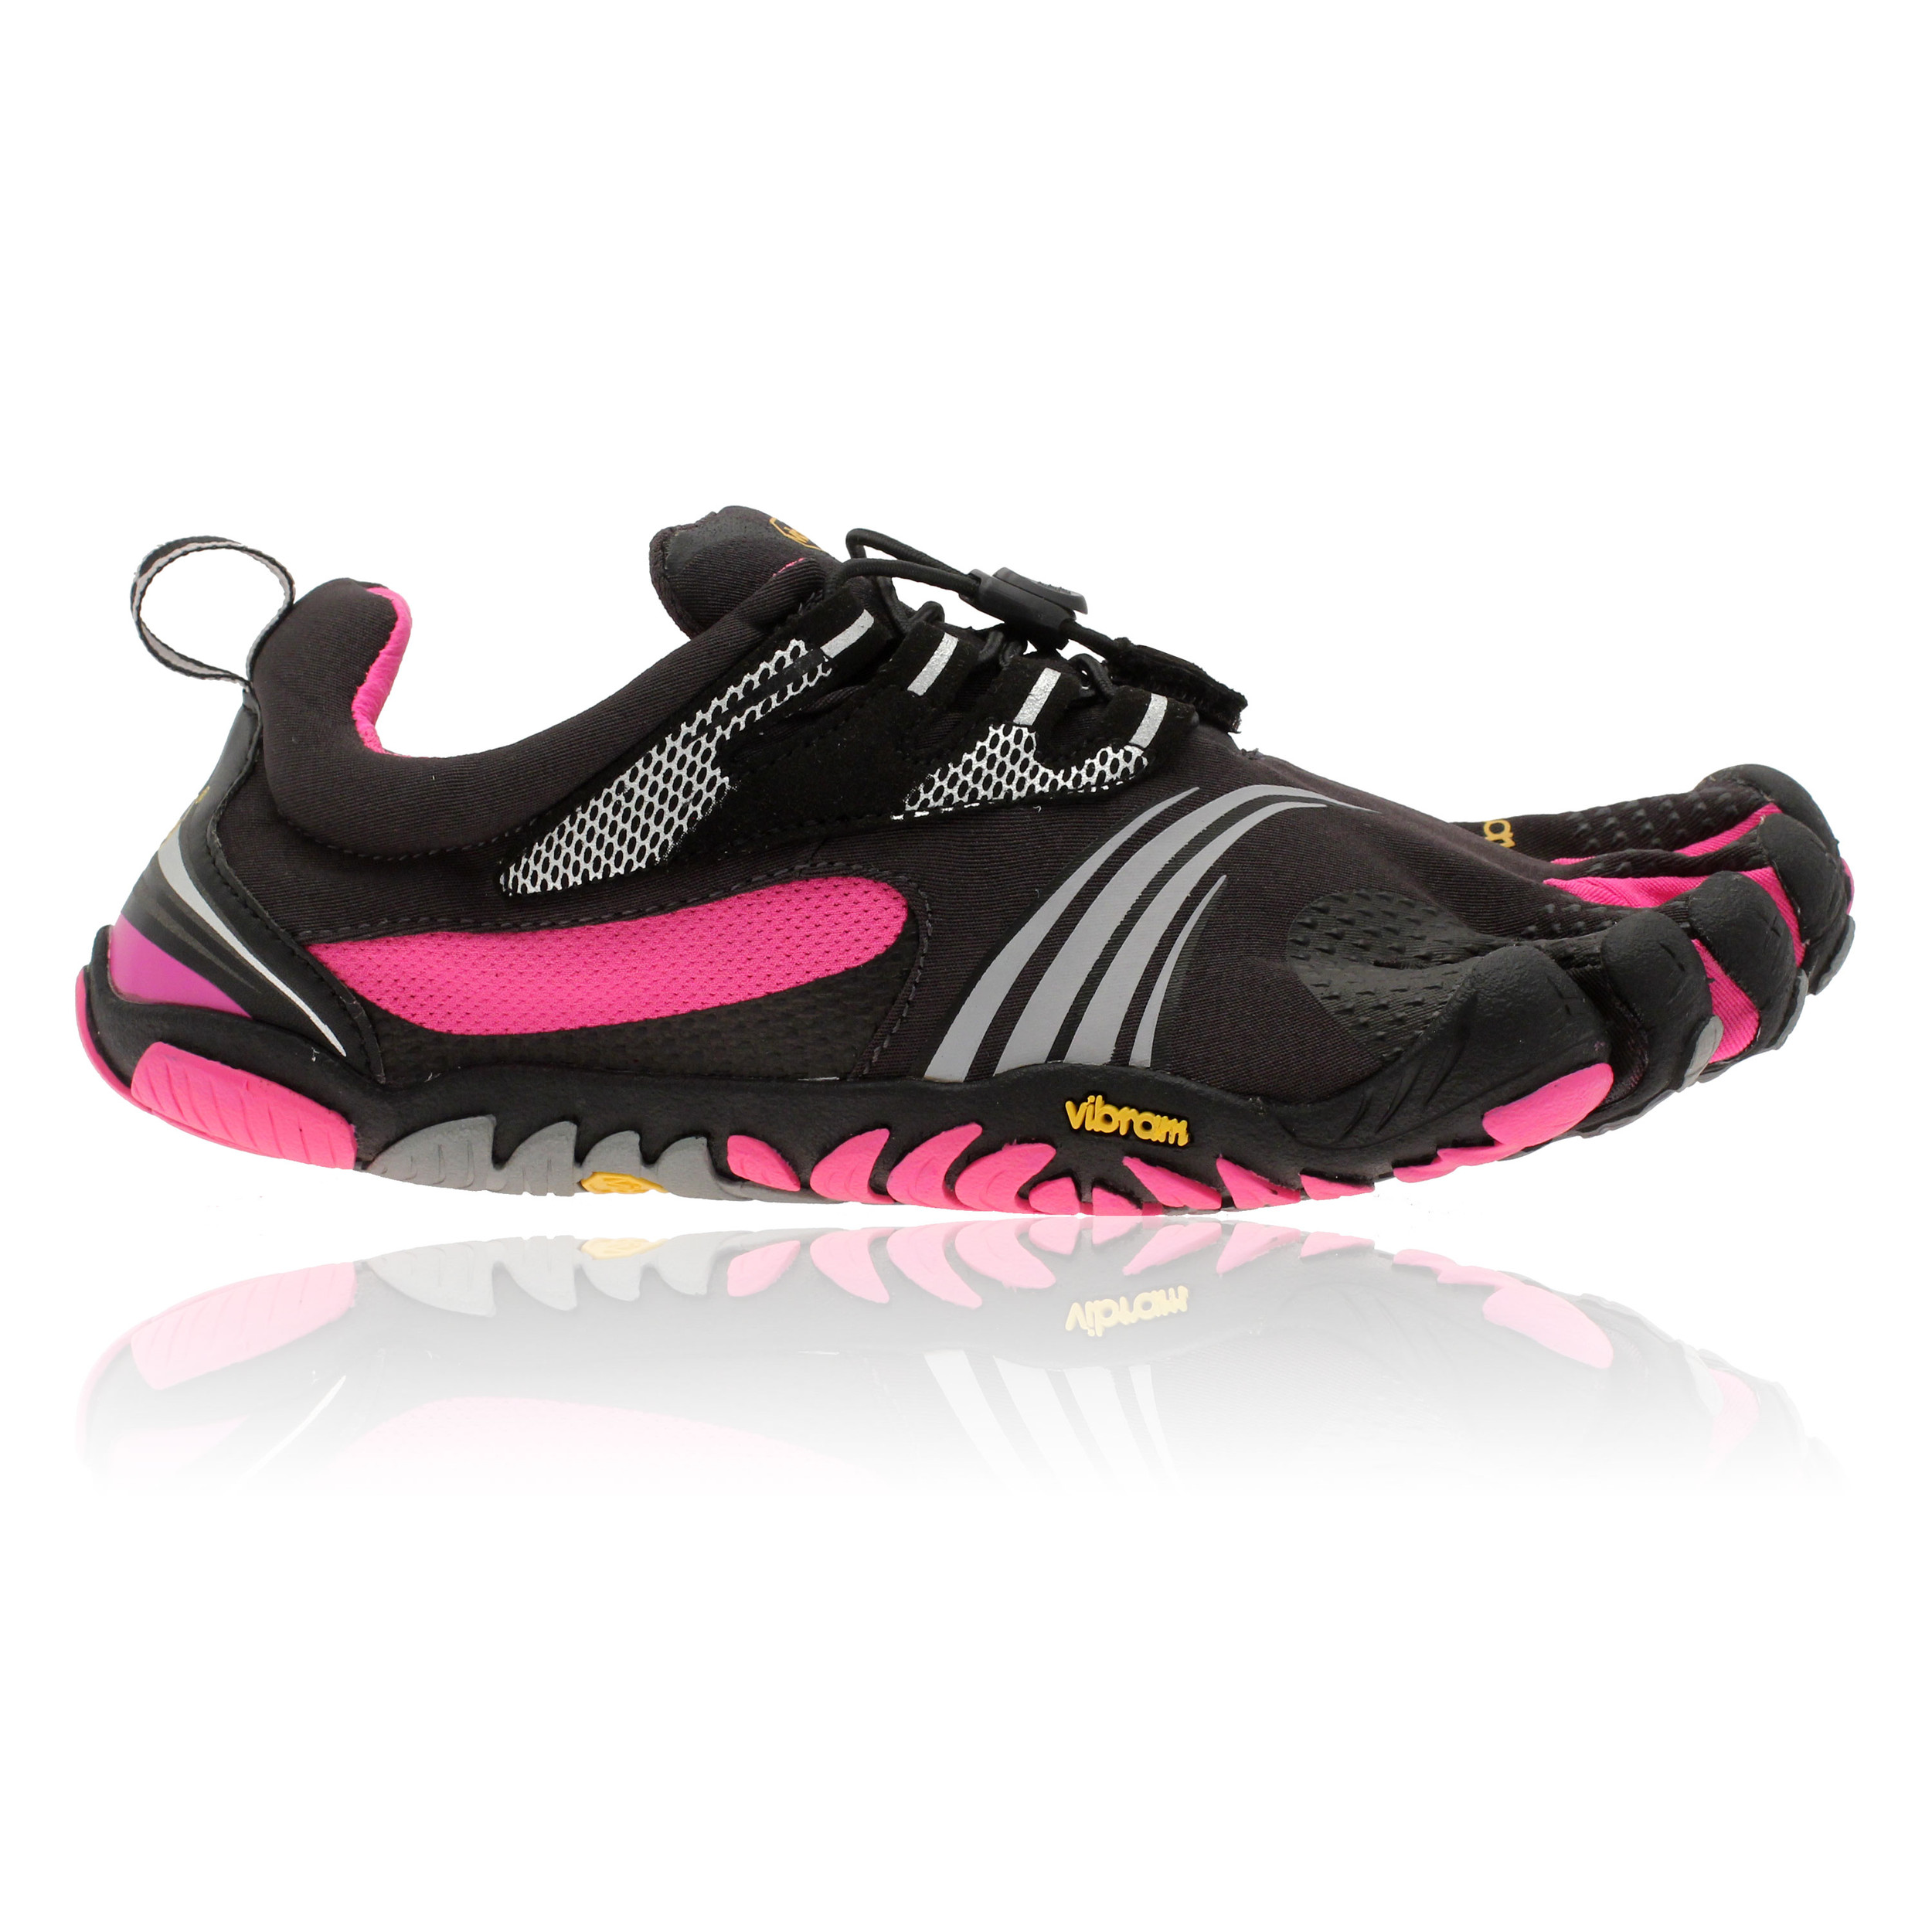 Five Fingers Shoes Adidas